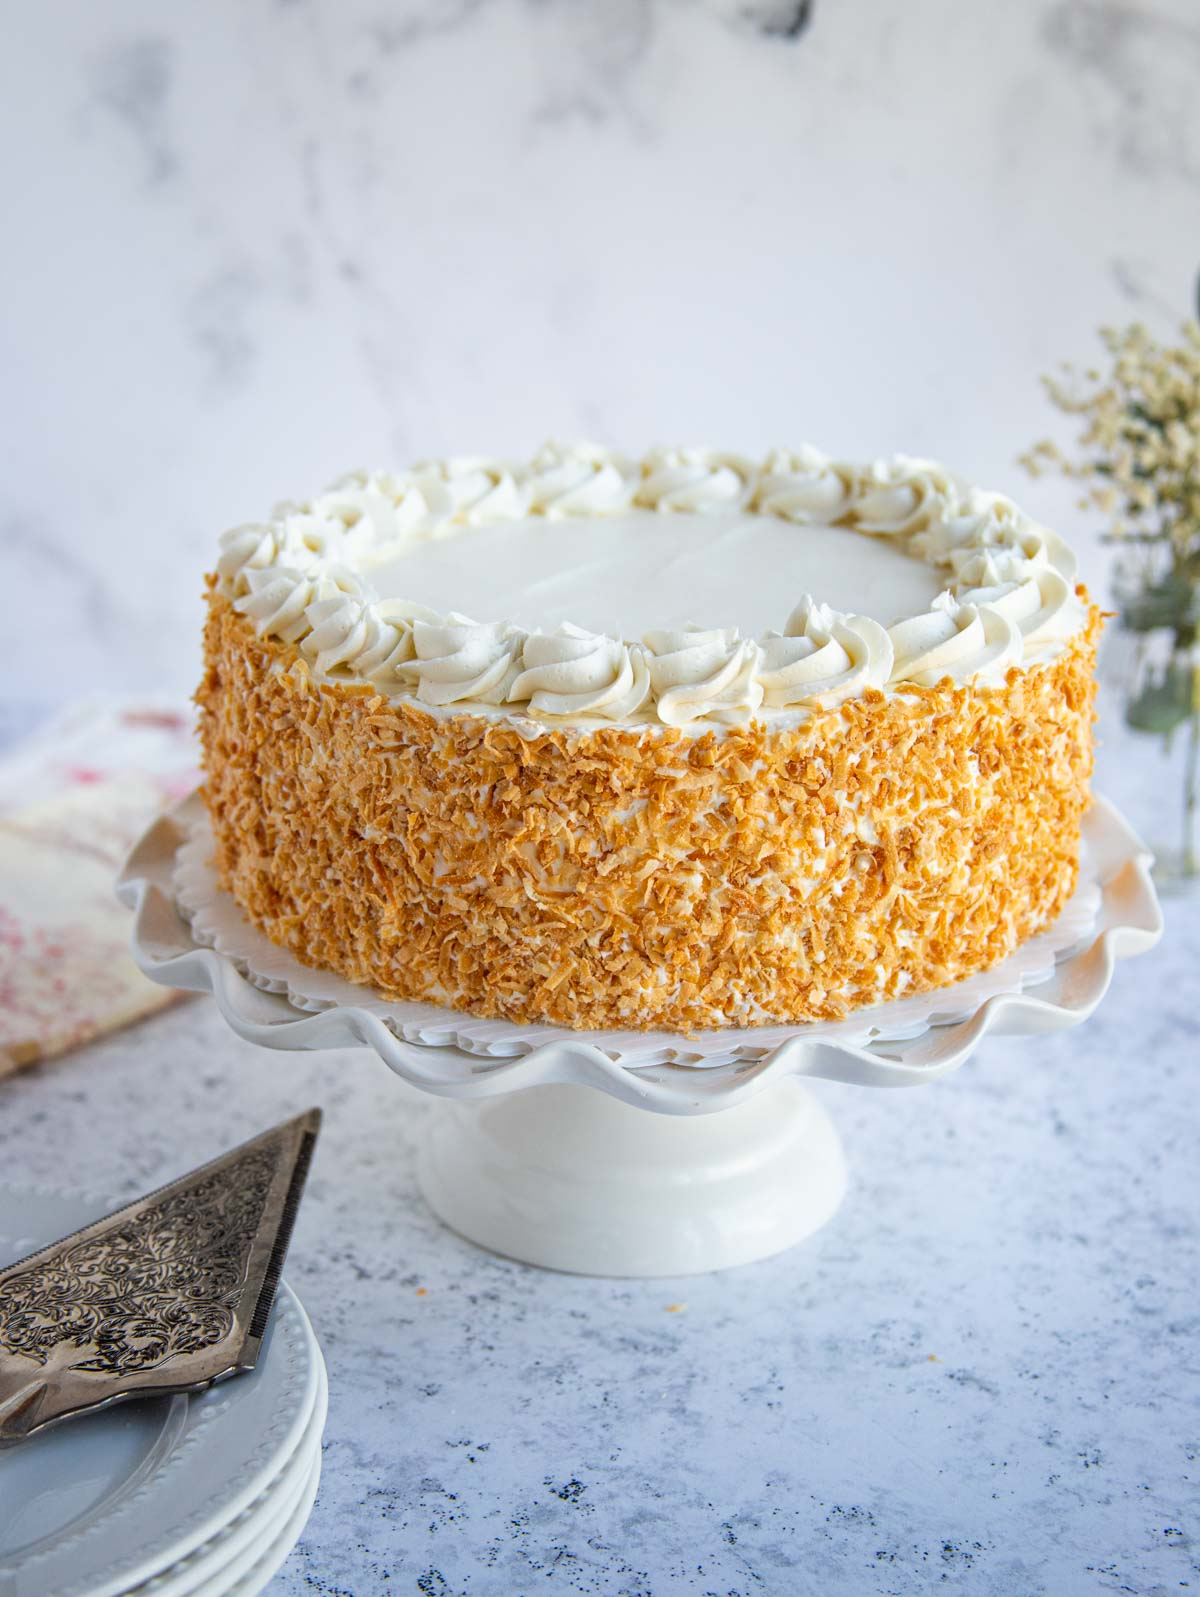 Coconut Layer Cake with Toasted Coconut Frosting on cake stand.  Cake server and cloth napkins on the left of the cake stand.